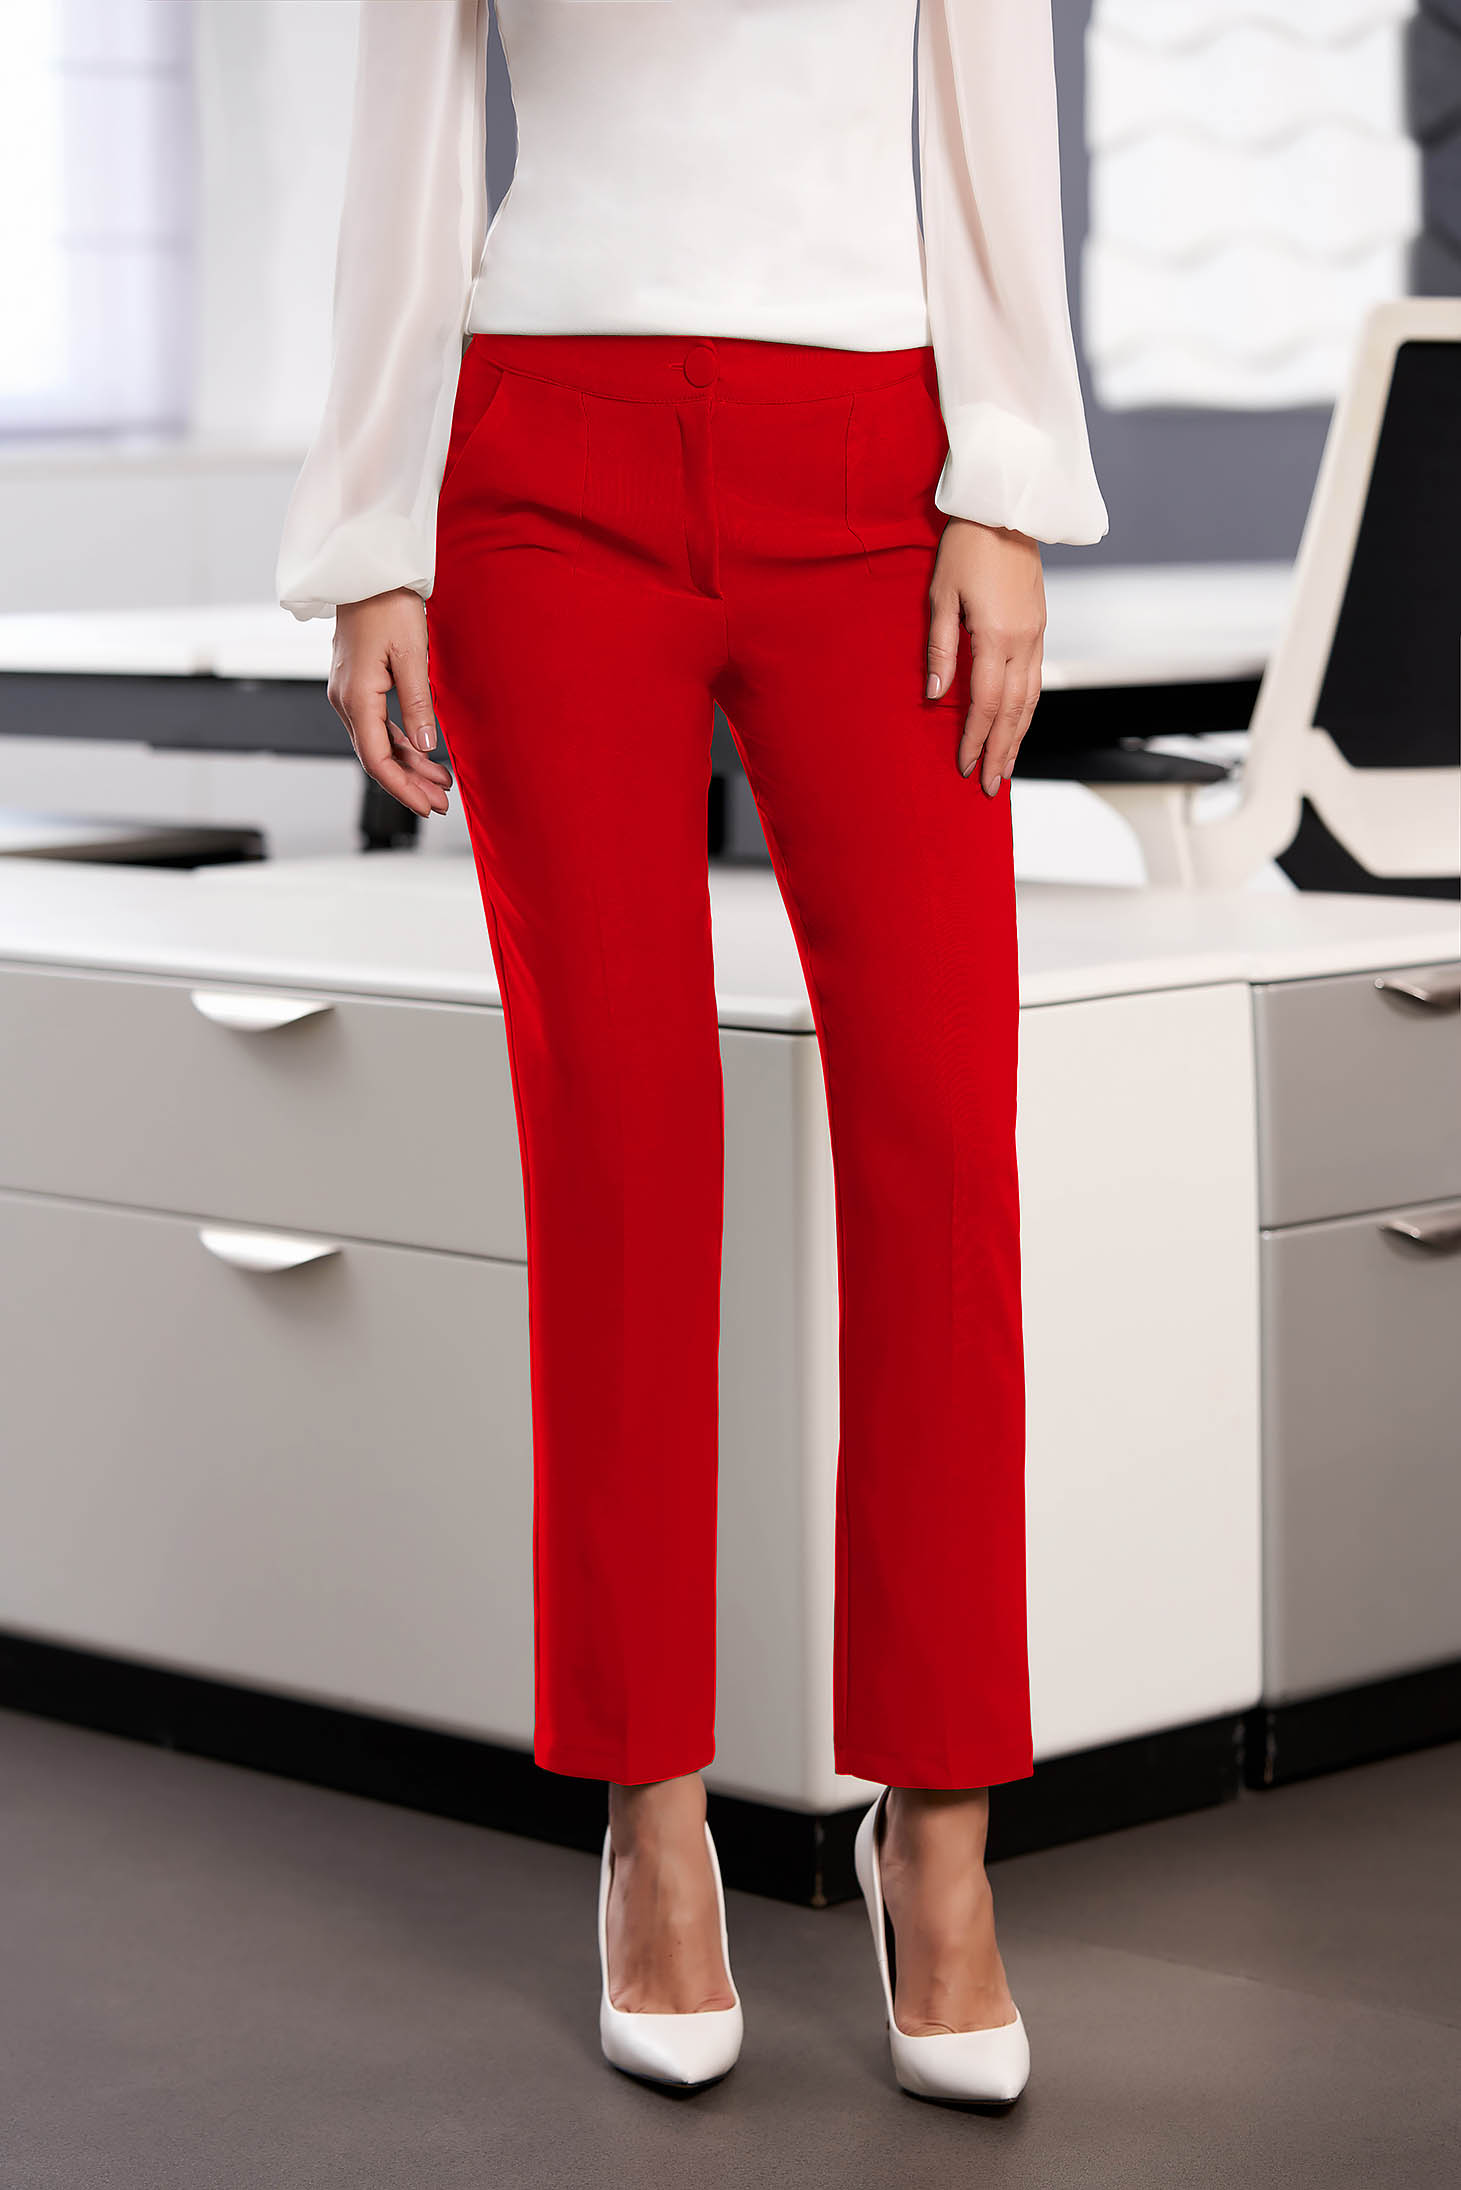 Trousers red office cloth medium waist straight